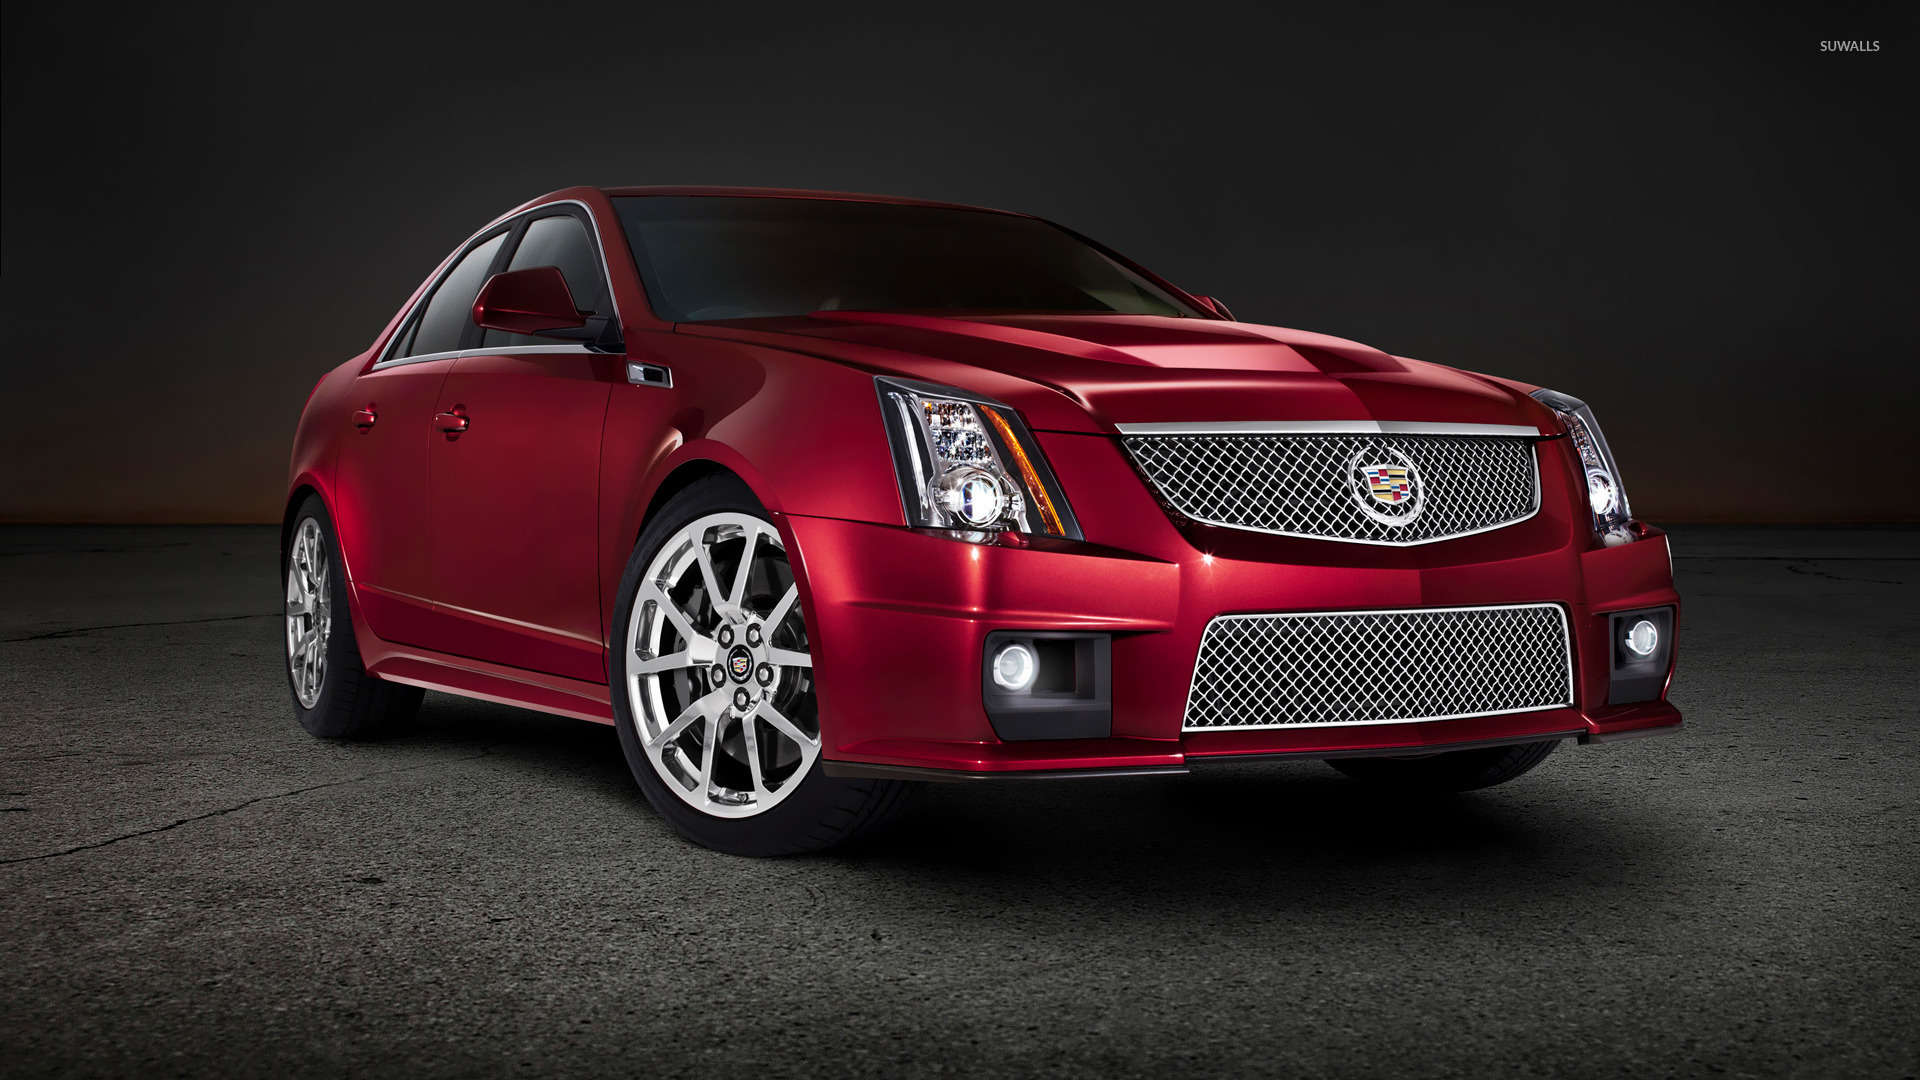 2013 cadillac cts v sport sedan wallpaper car wallpapers 15707. Black Bedroom Furniture Sets. Home Design Ideas